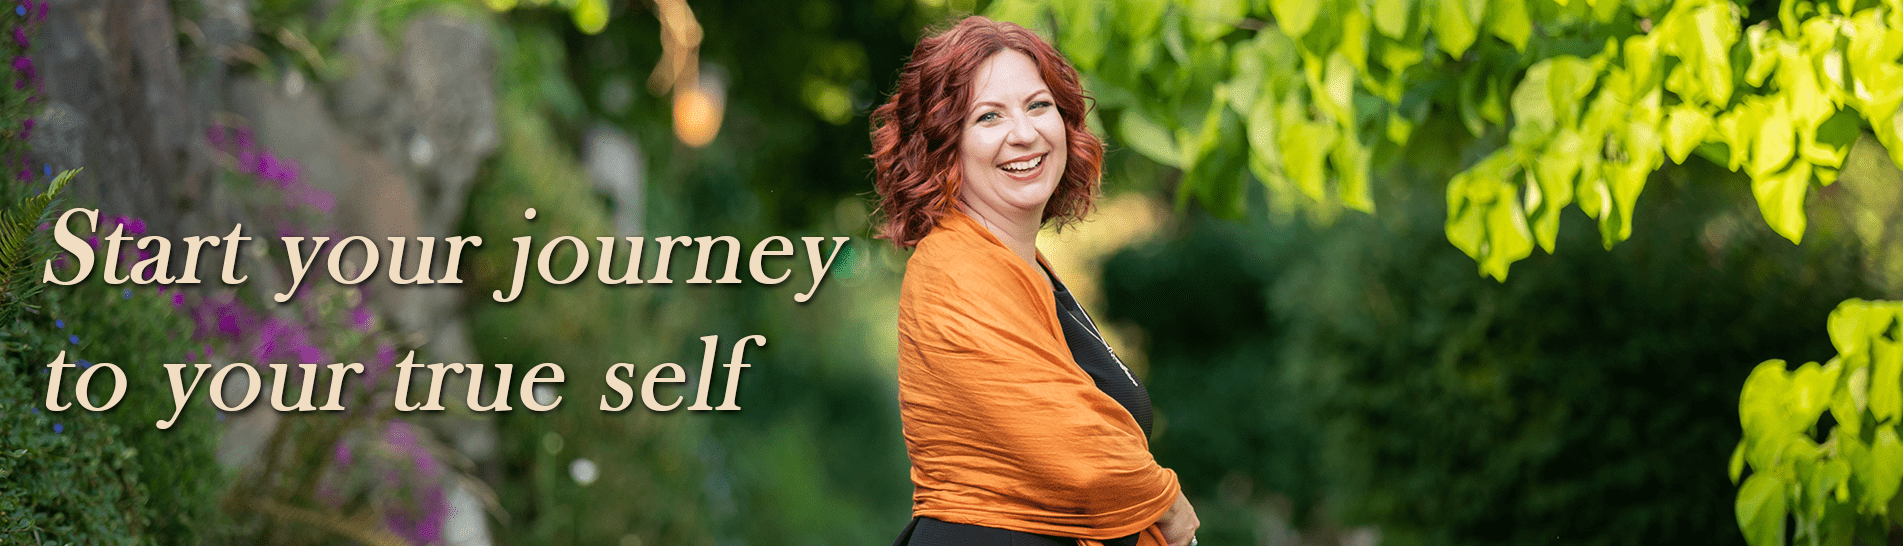 Start your journey to your true self